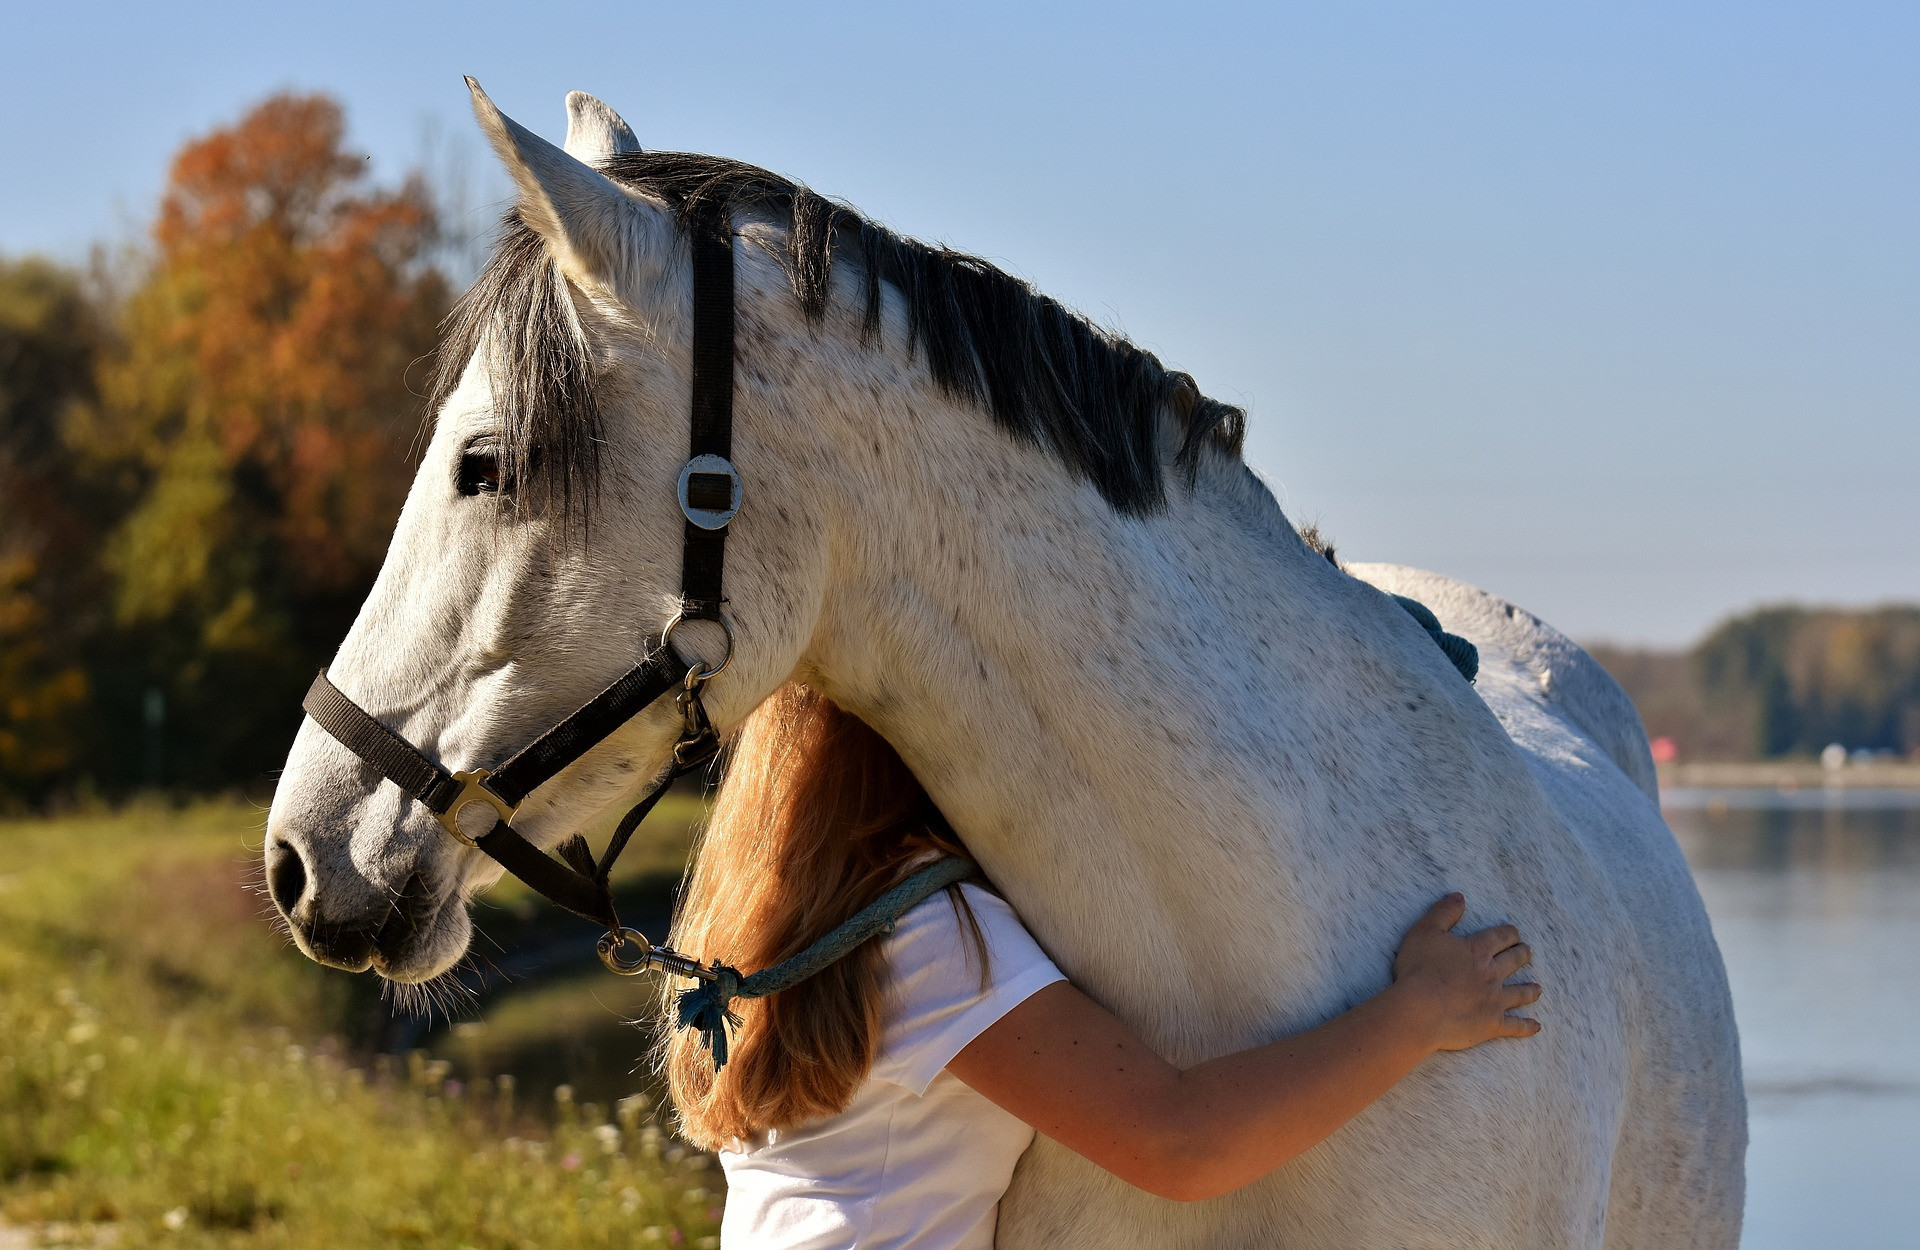 ❤️ Reasons to love horses this Valentines ❤️